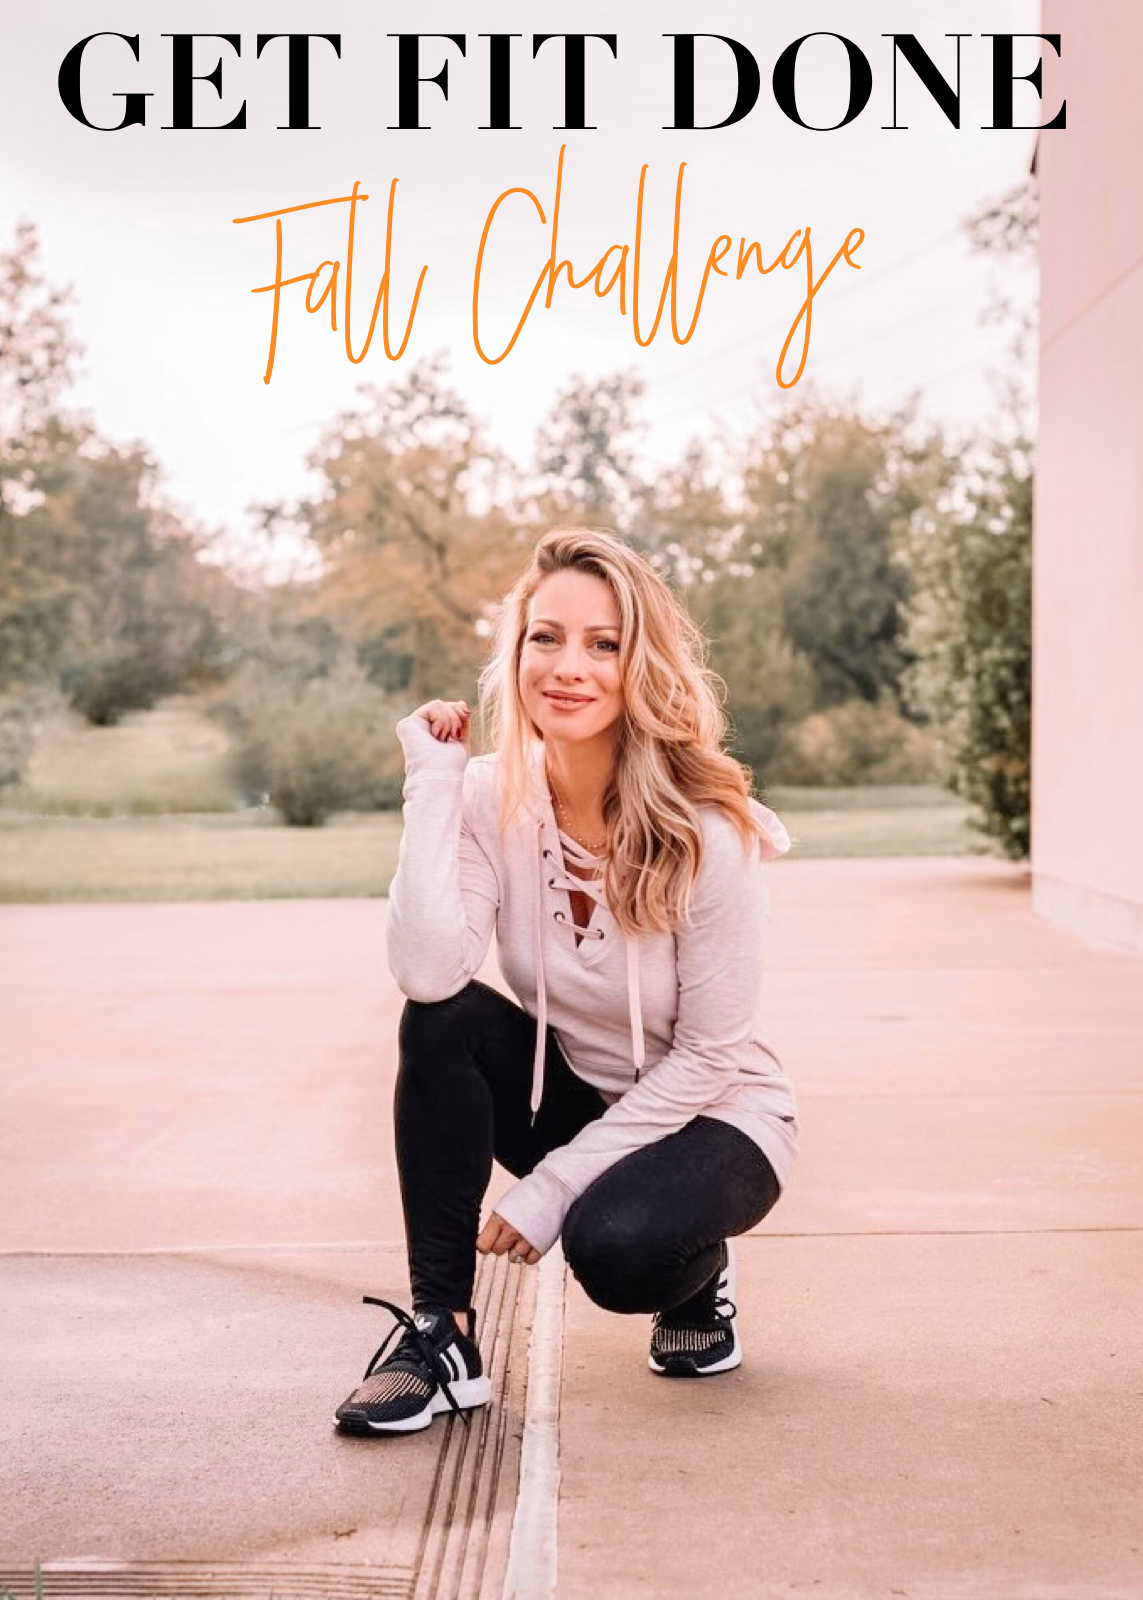 Get Fit Done Fall Challenge